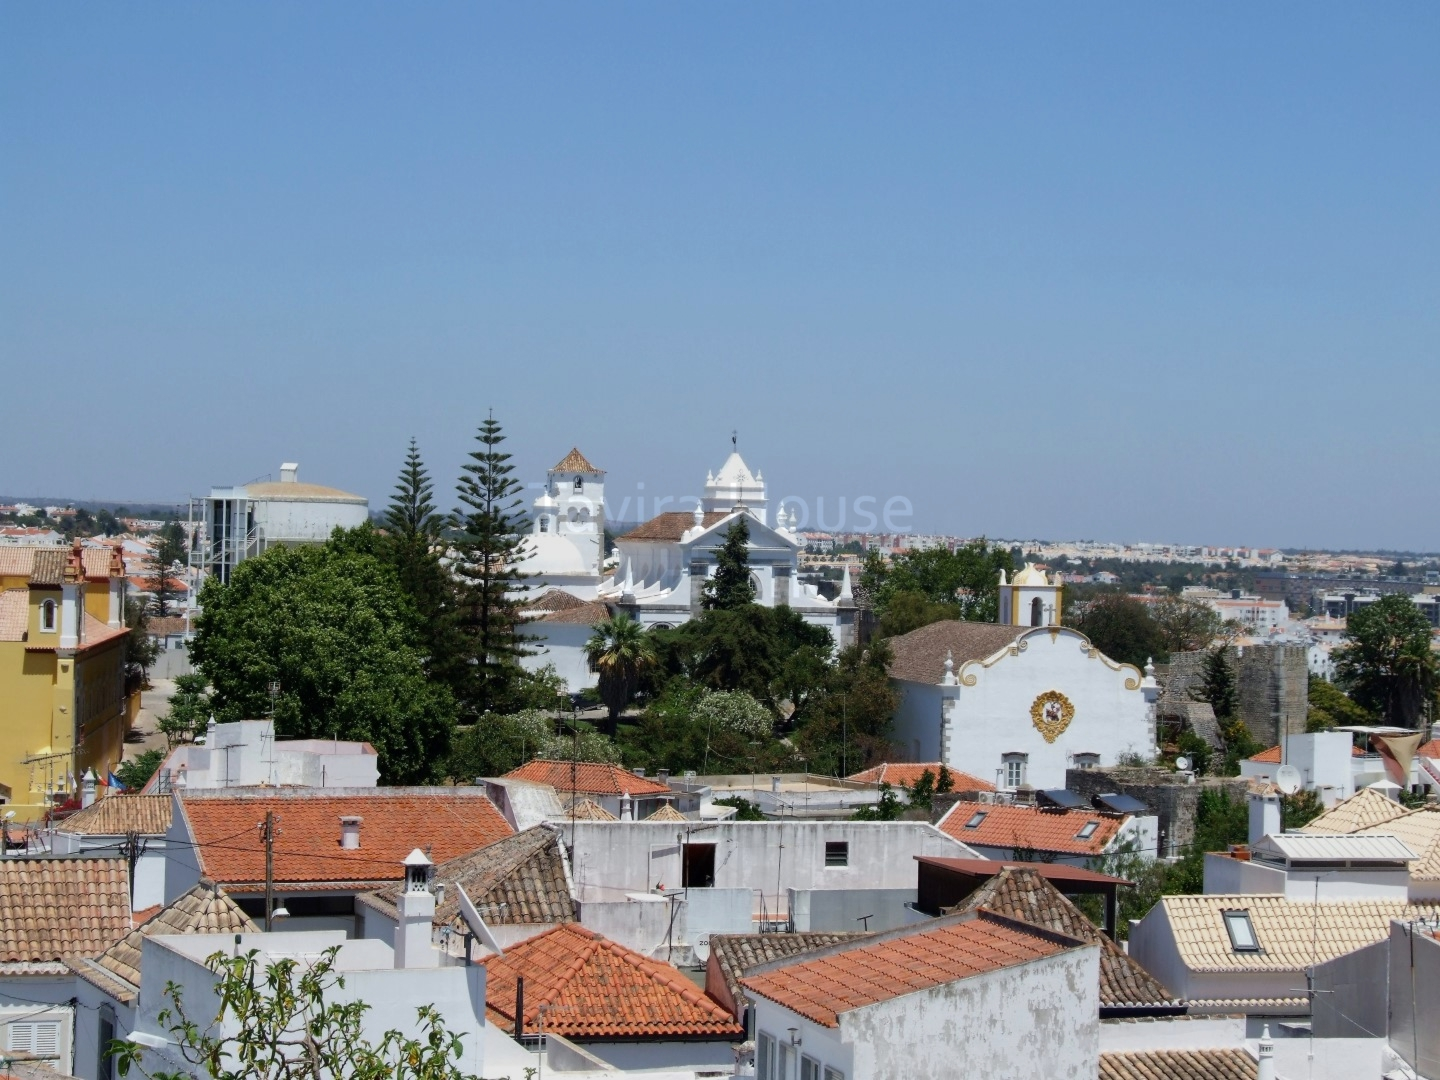 A0554 - 2 Bedroom Apartment with Views Over Tavira  Central Tavira  Portugal